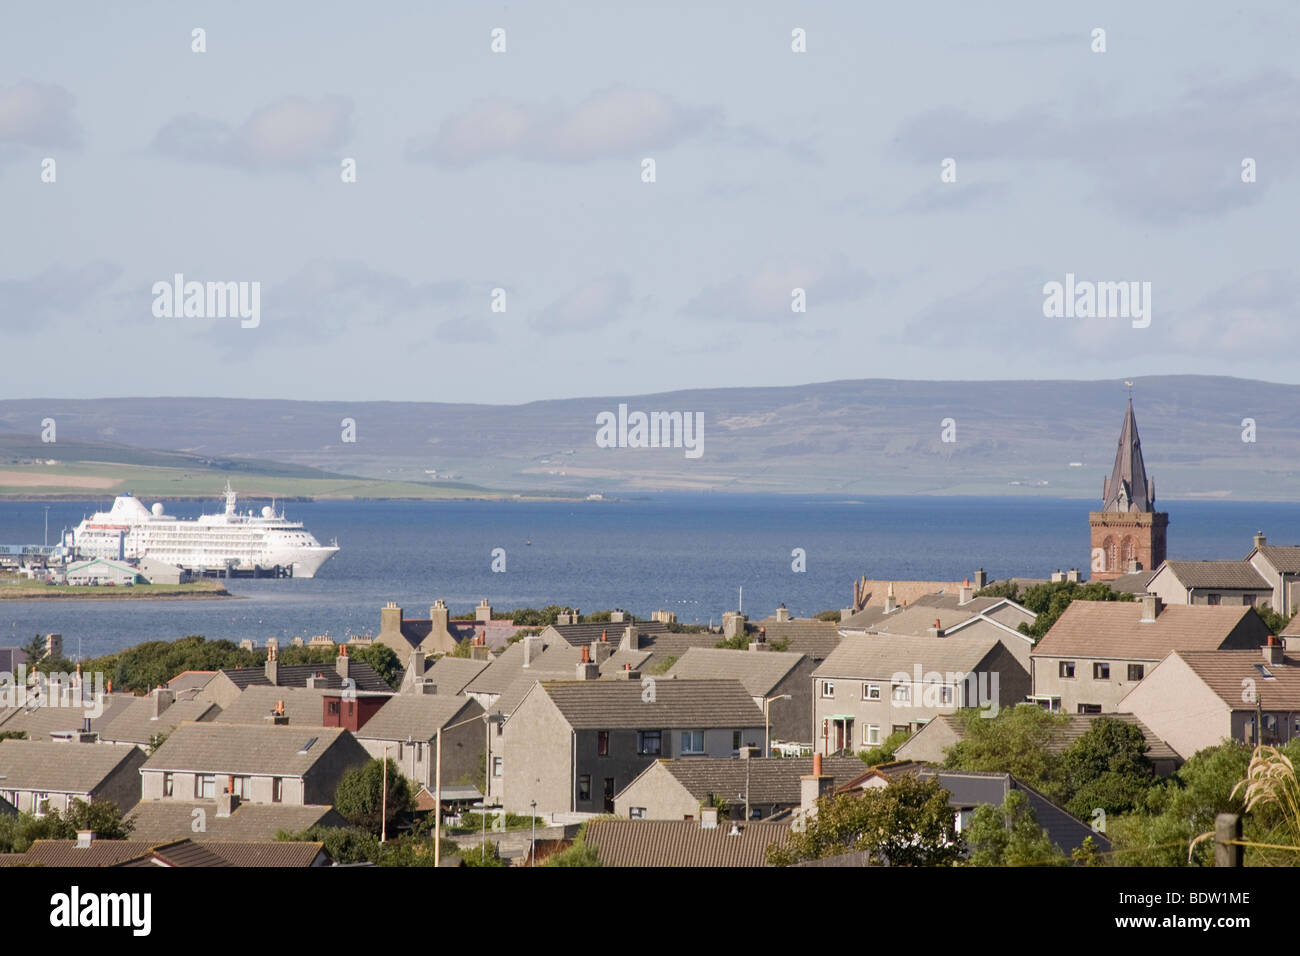 view of kirkwall, hauptstadt der orkney-inseln, capital of orkney islands, scotland, schottland - Stock Image